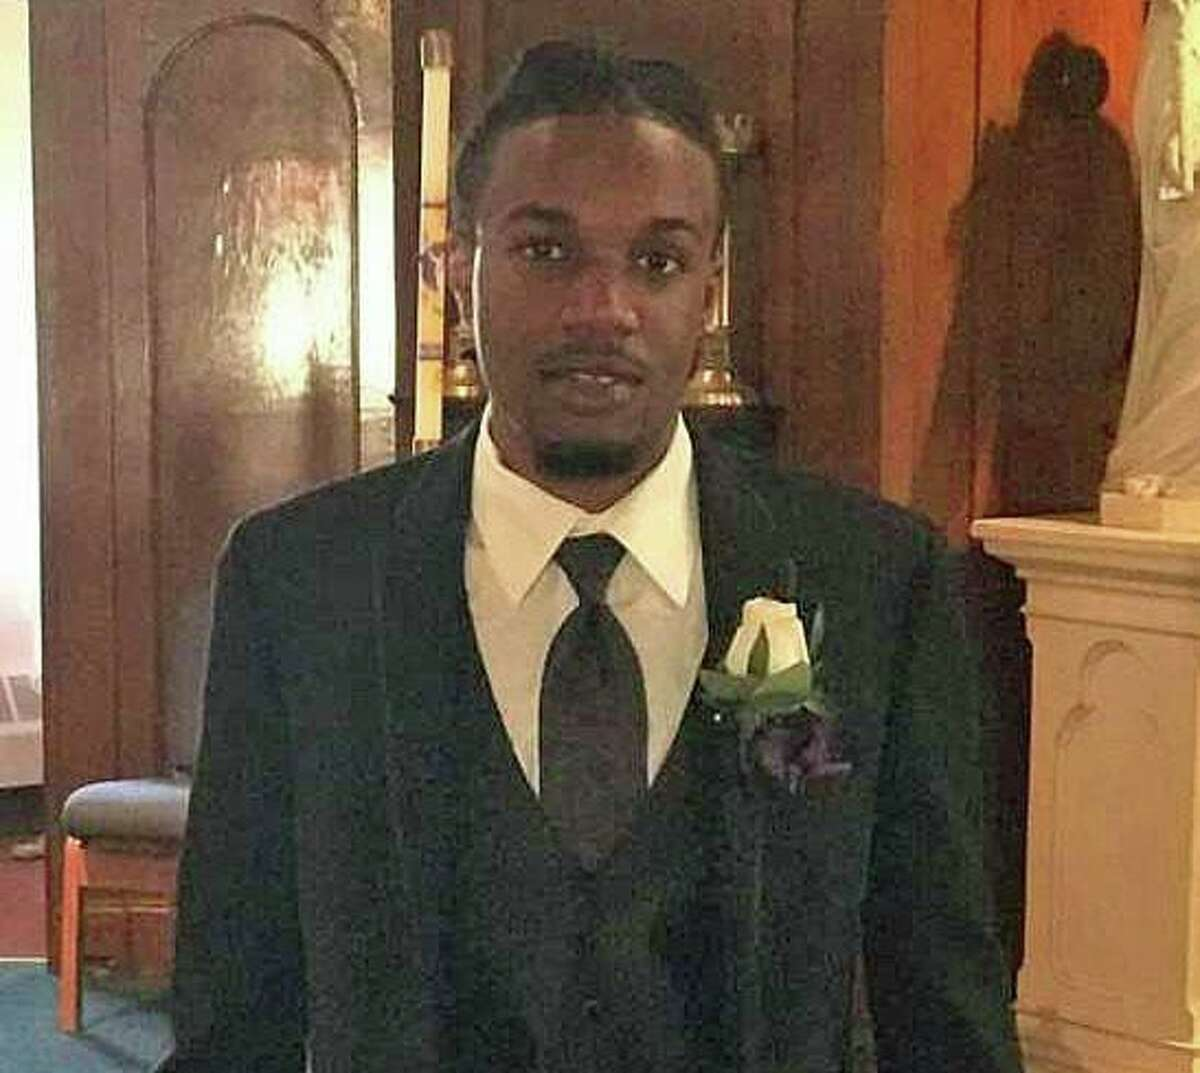 Nayir Nixon died Sunday, Sept. 27, 2020, in Bridgeport after being shot inside the Keystone social club, stumbling outside and being hit by a car that fled.